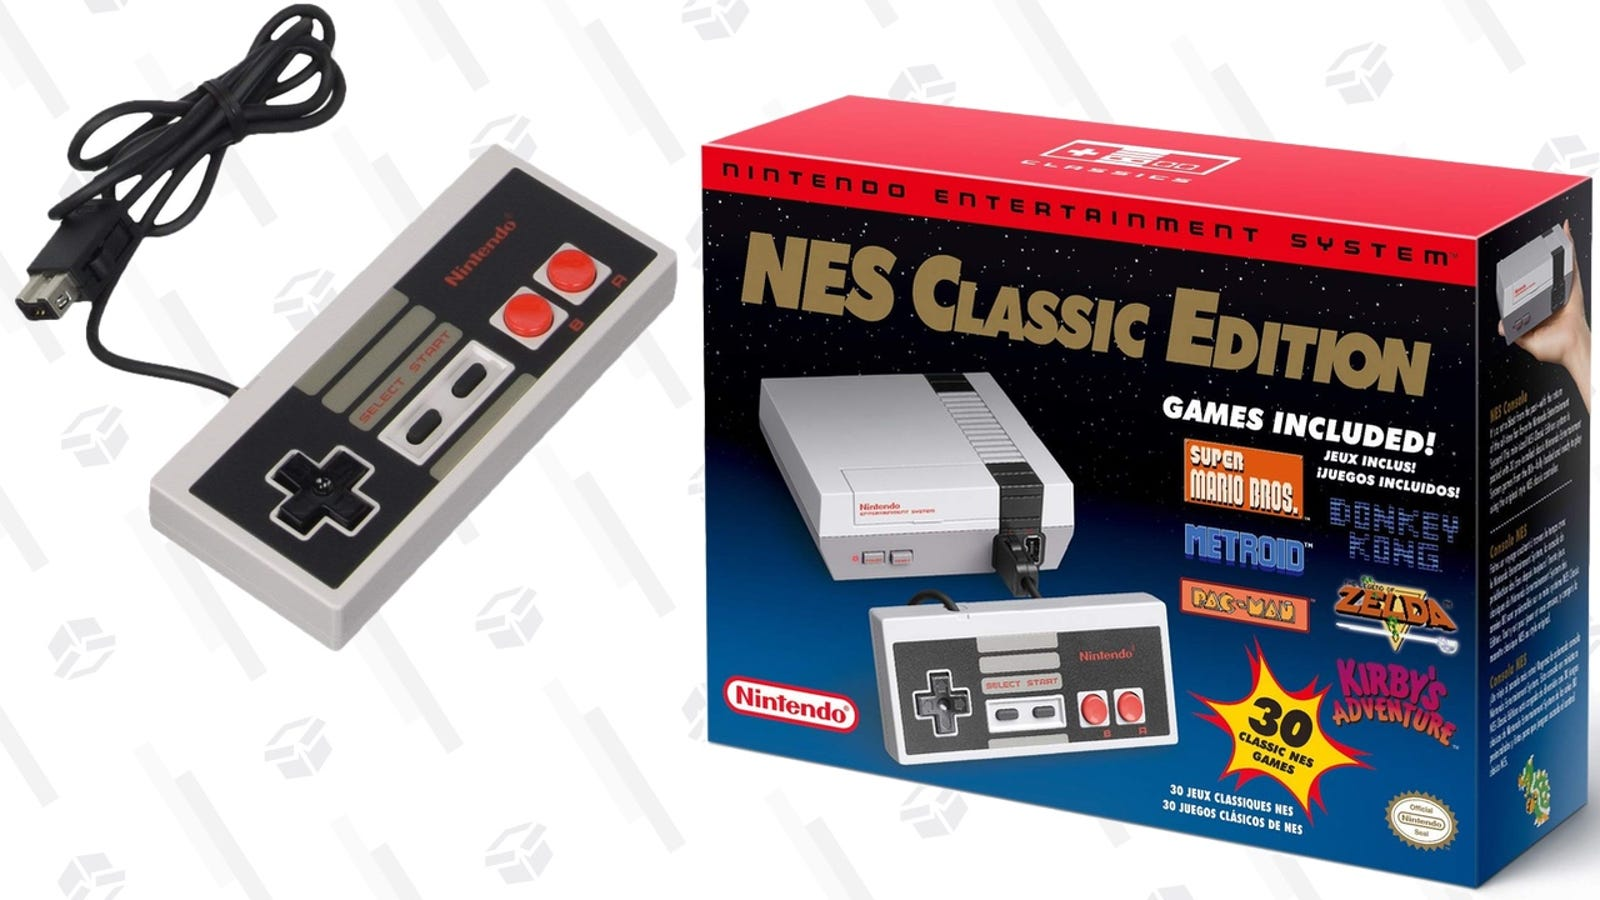 The Nes Classic And Spare Controllers Are Both In Stock